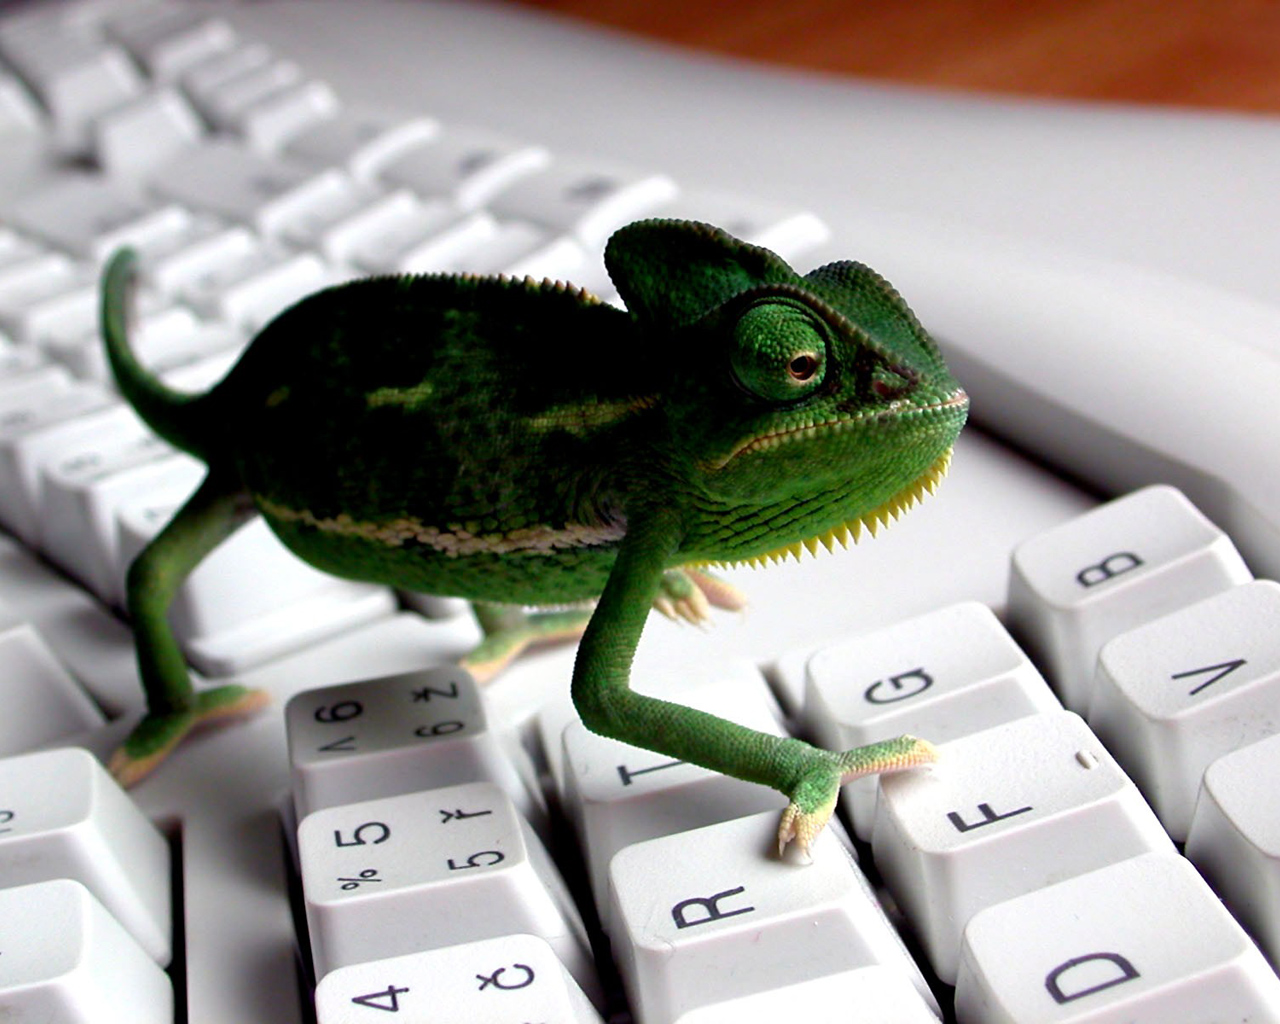 keyboard Lizard